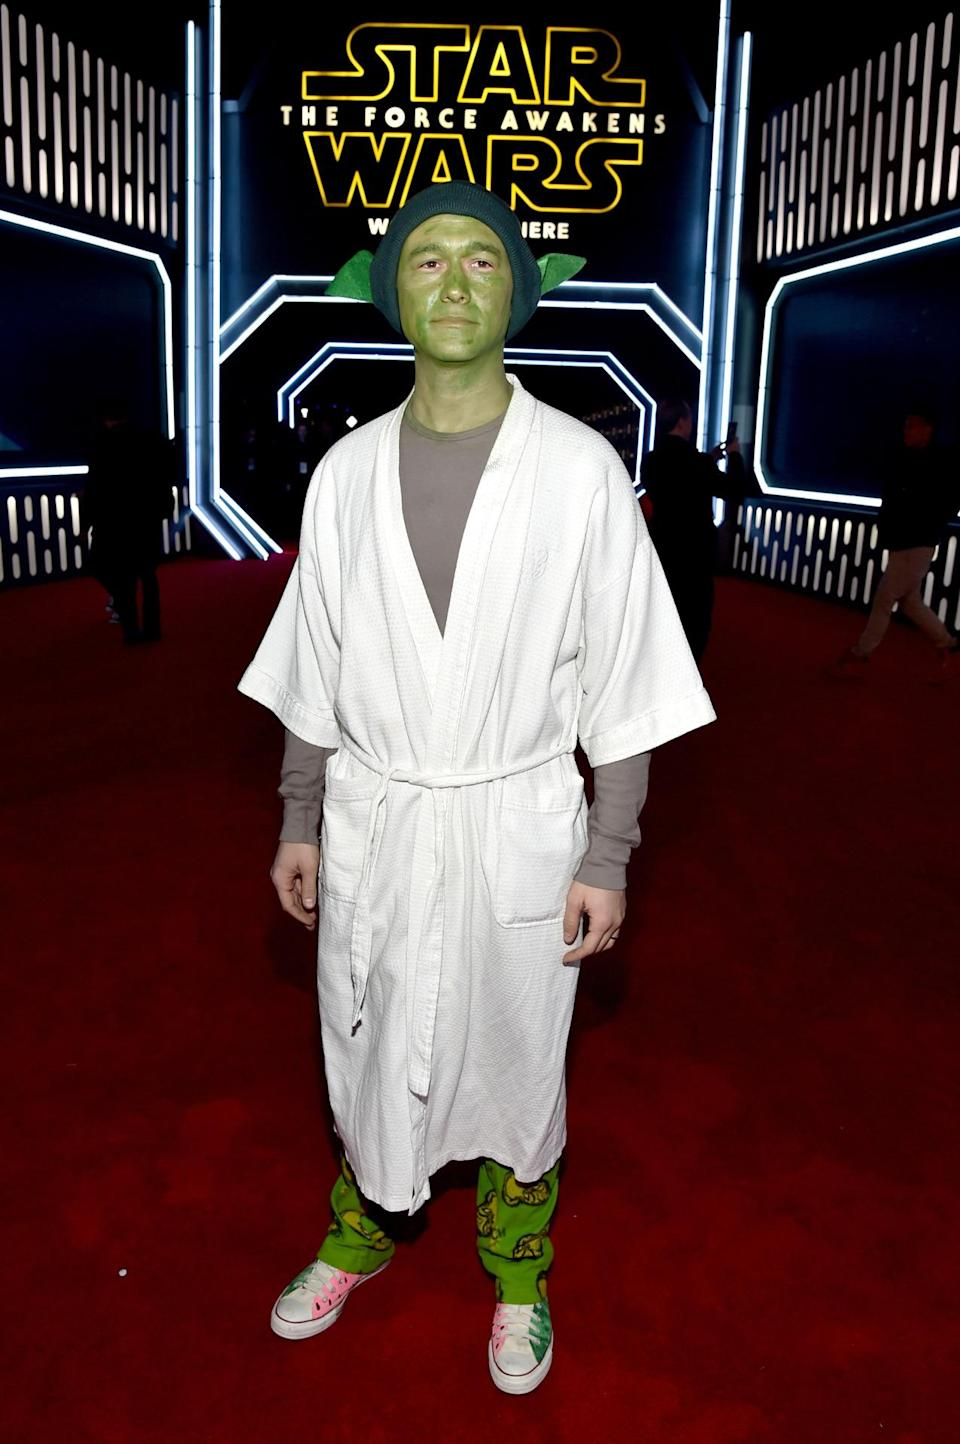 <p>Perhaps auditioning for the role of Yoda in a future <i>Star Wars</i> film, Joseph Gordon-Levitt showed up to the LA premiere in costume (plus Converse). <br>We'd cast you JGL!</p><p><i>Photo: Getty Images</i></p>